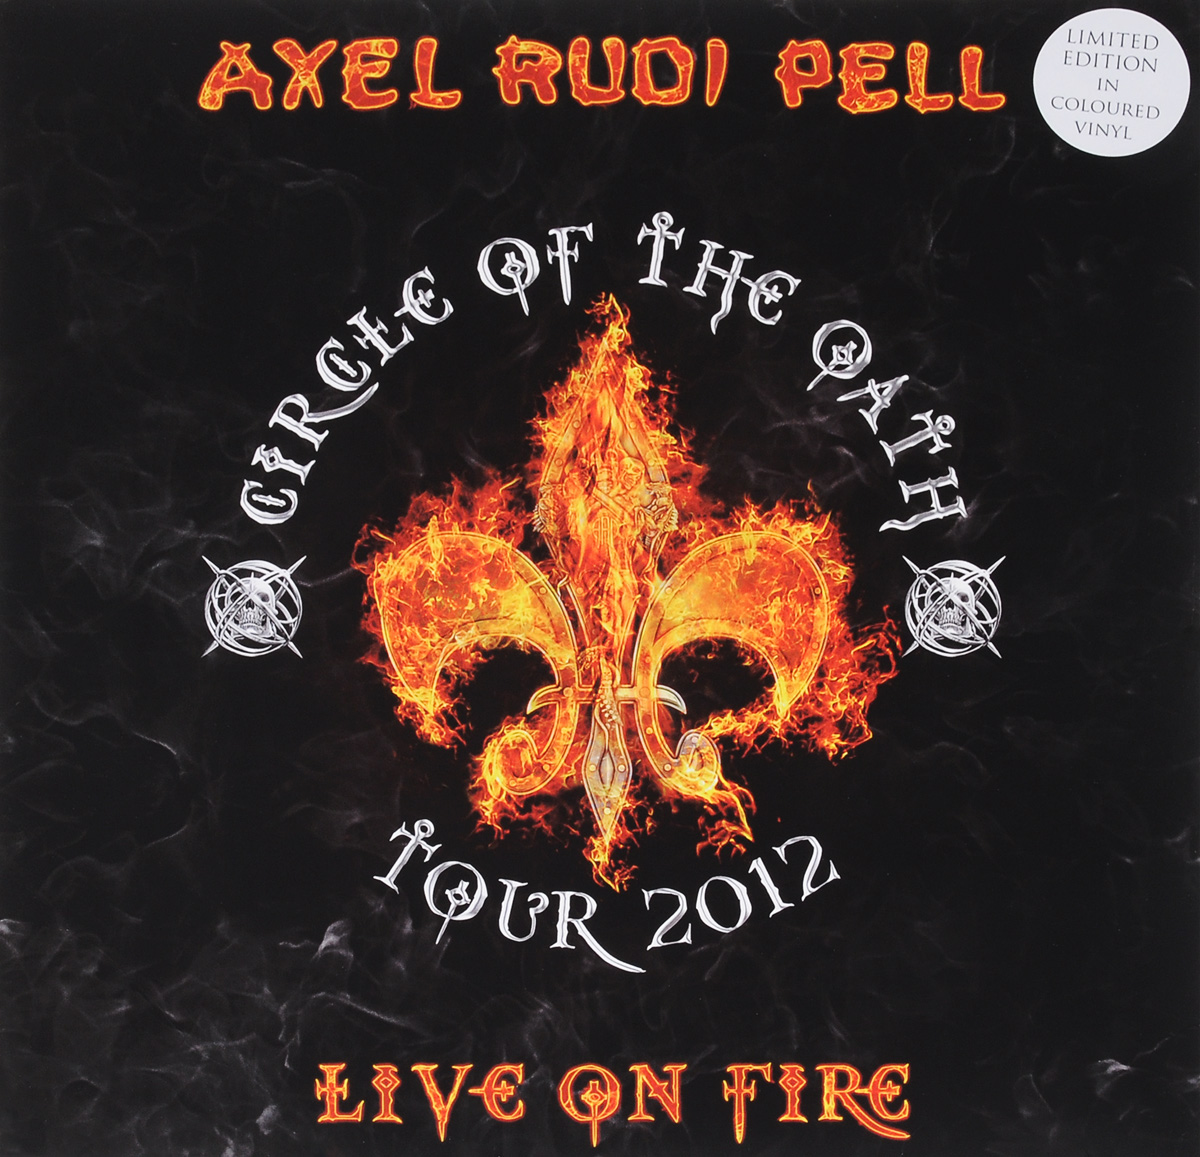 Аксель Руди Пелл Axel Rudi Pell. Live On Fire. Limited Edition In Colored Vinyl (3 LP) for amazon 2017 new kindle fire hd 8 armor shockproof hybrid heavy duty protective stand cover case for kindle fire hd8 2017